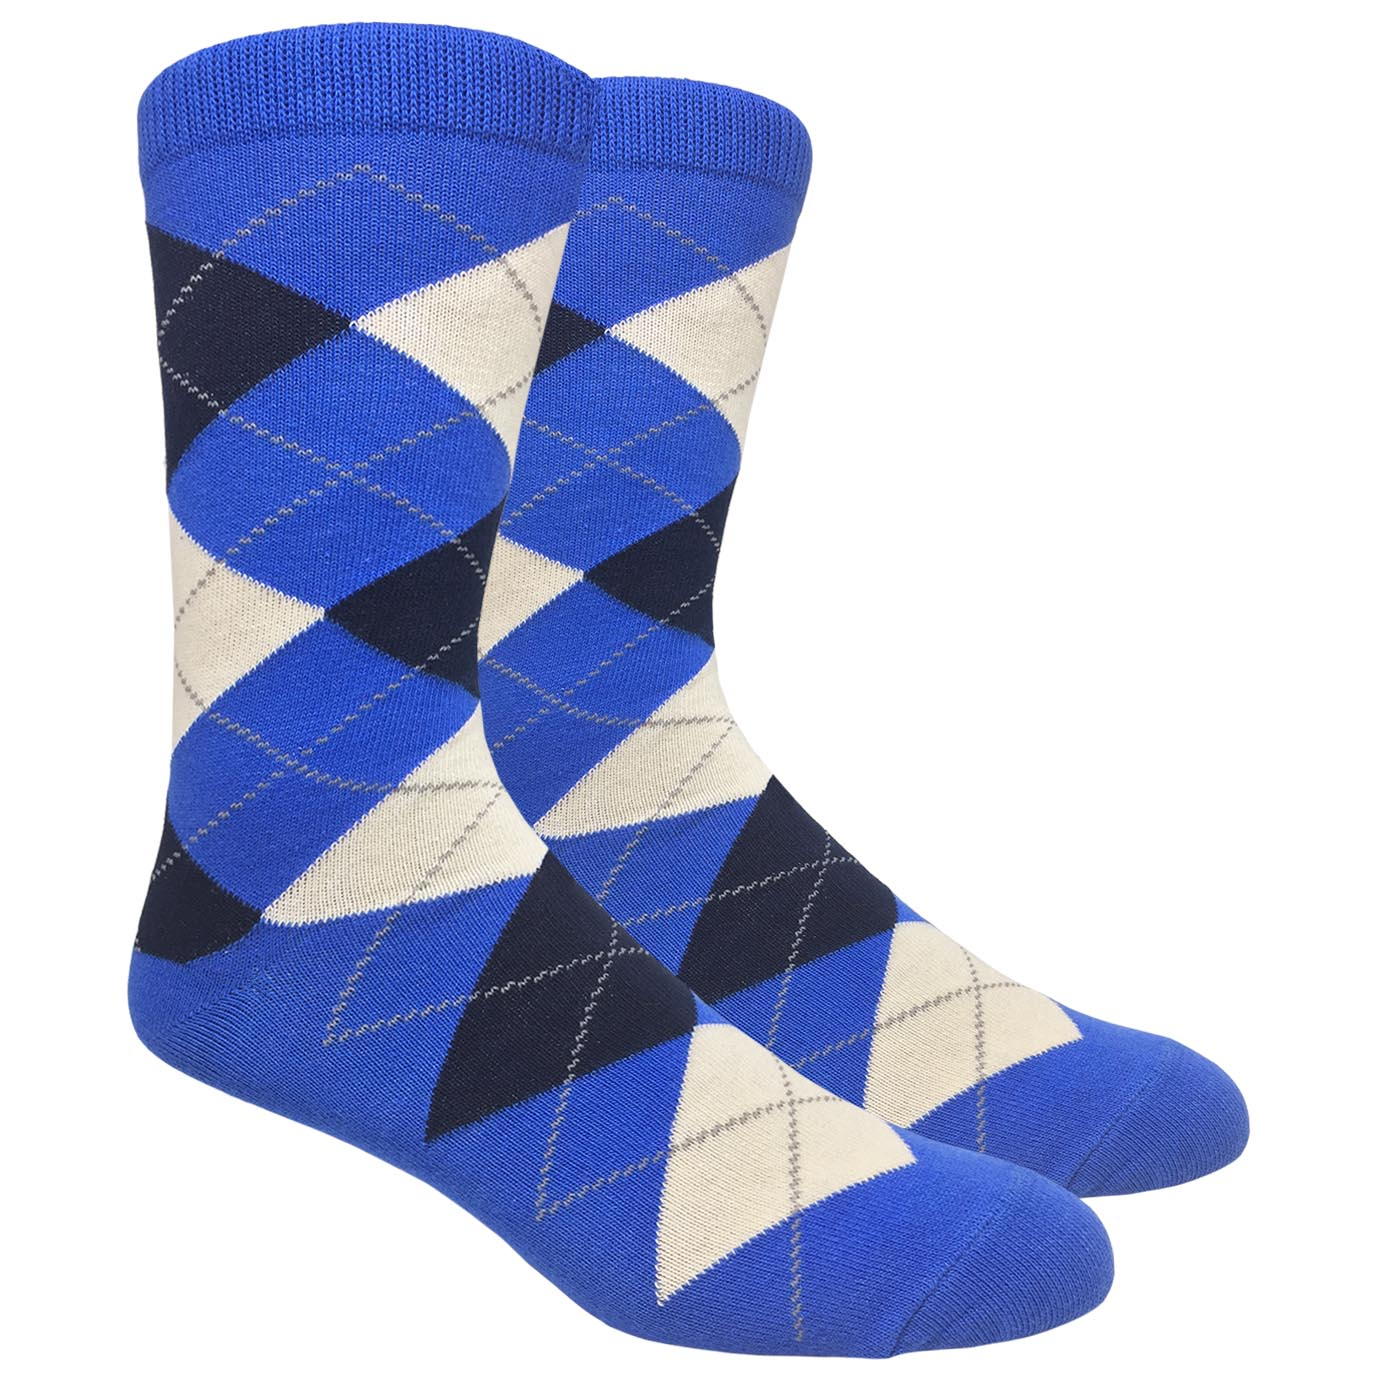 FineFit Black Label Argyle Socks - Royal Blue